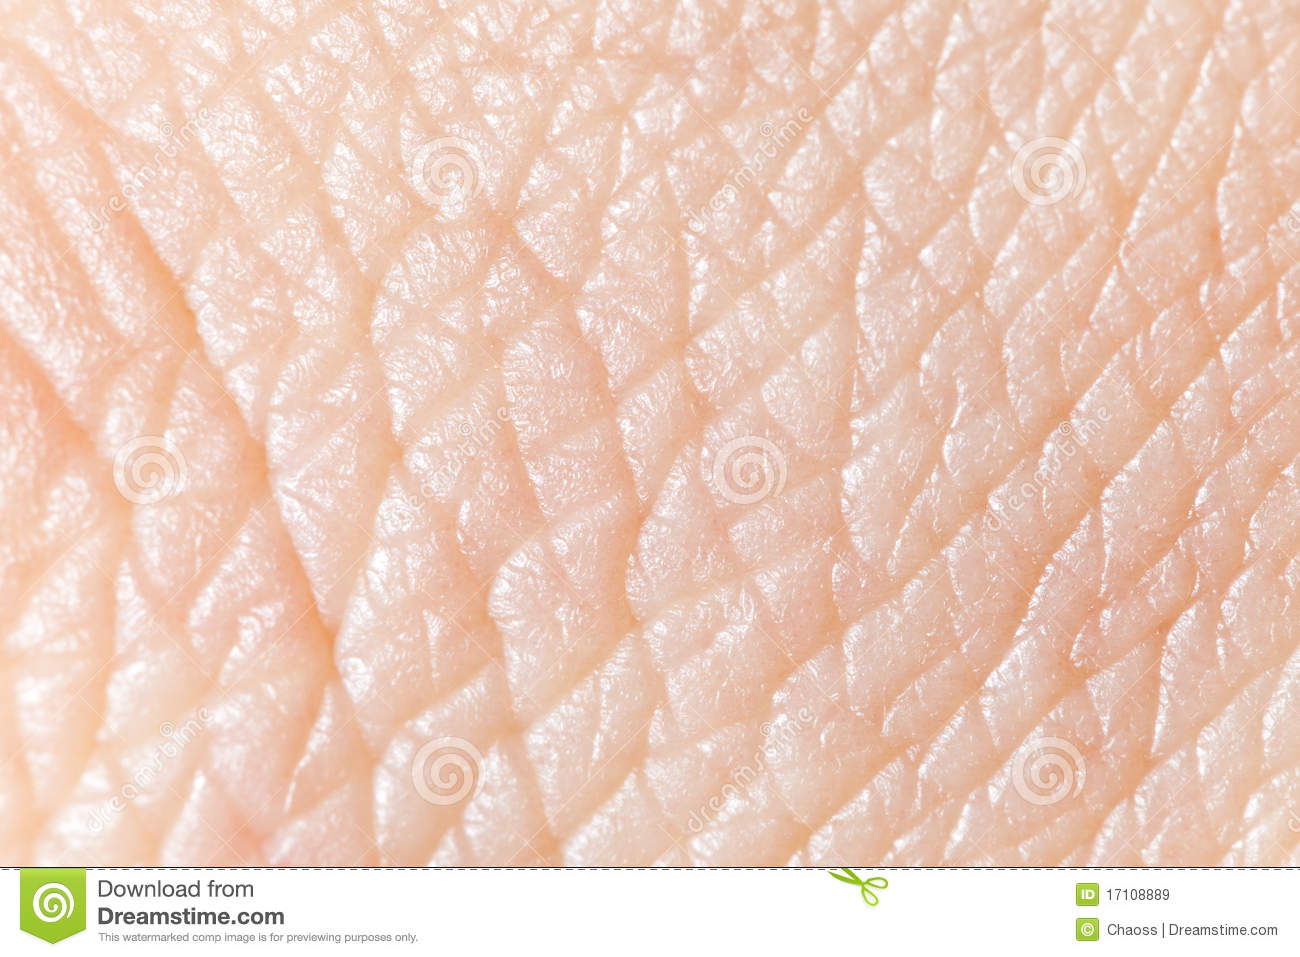 human skin stock image image of closeup abstract. Black Bedroom Furniture Sets. Home Design Ideas